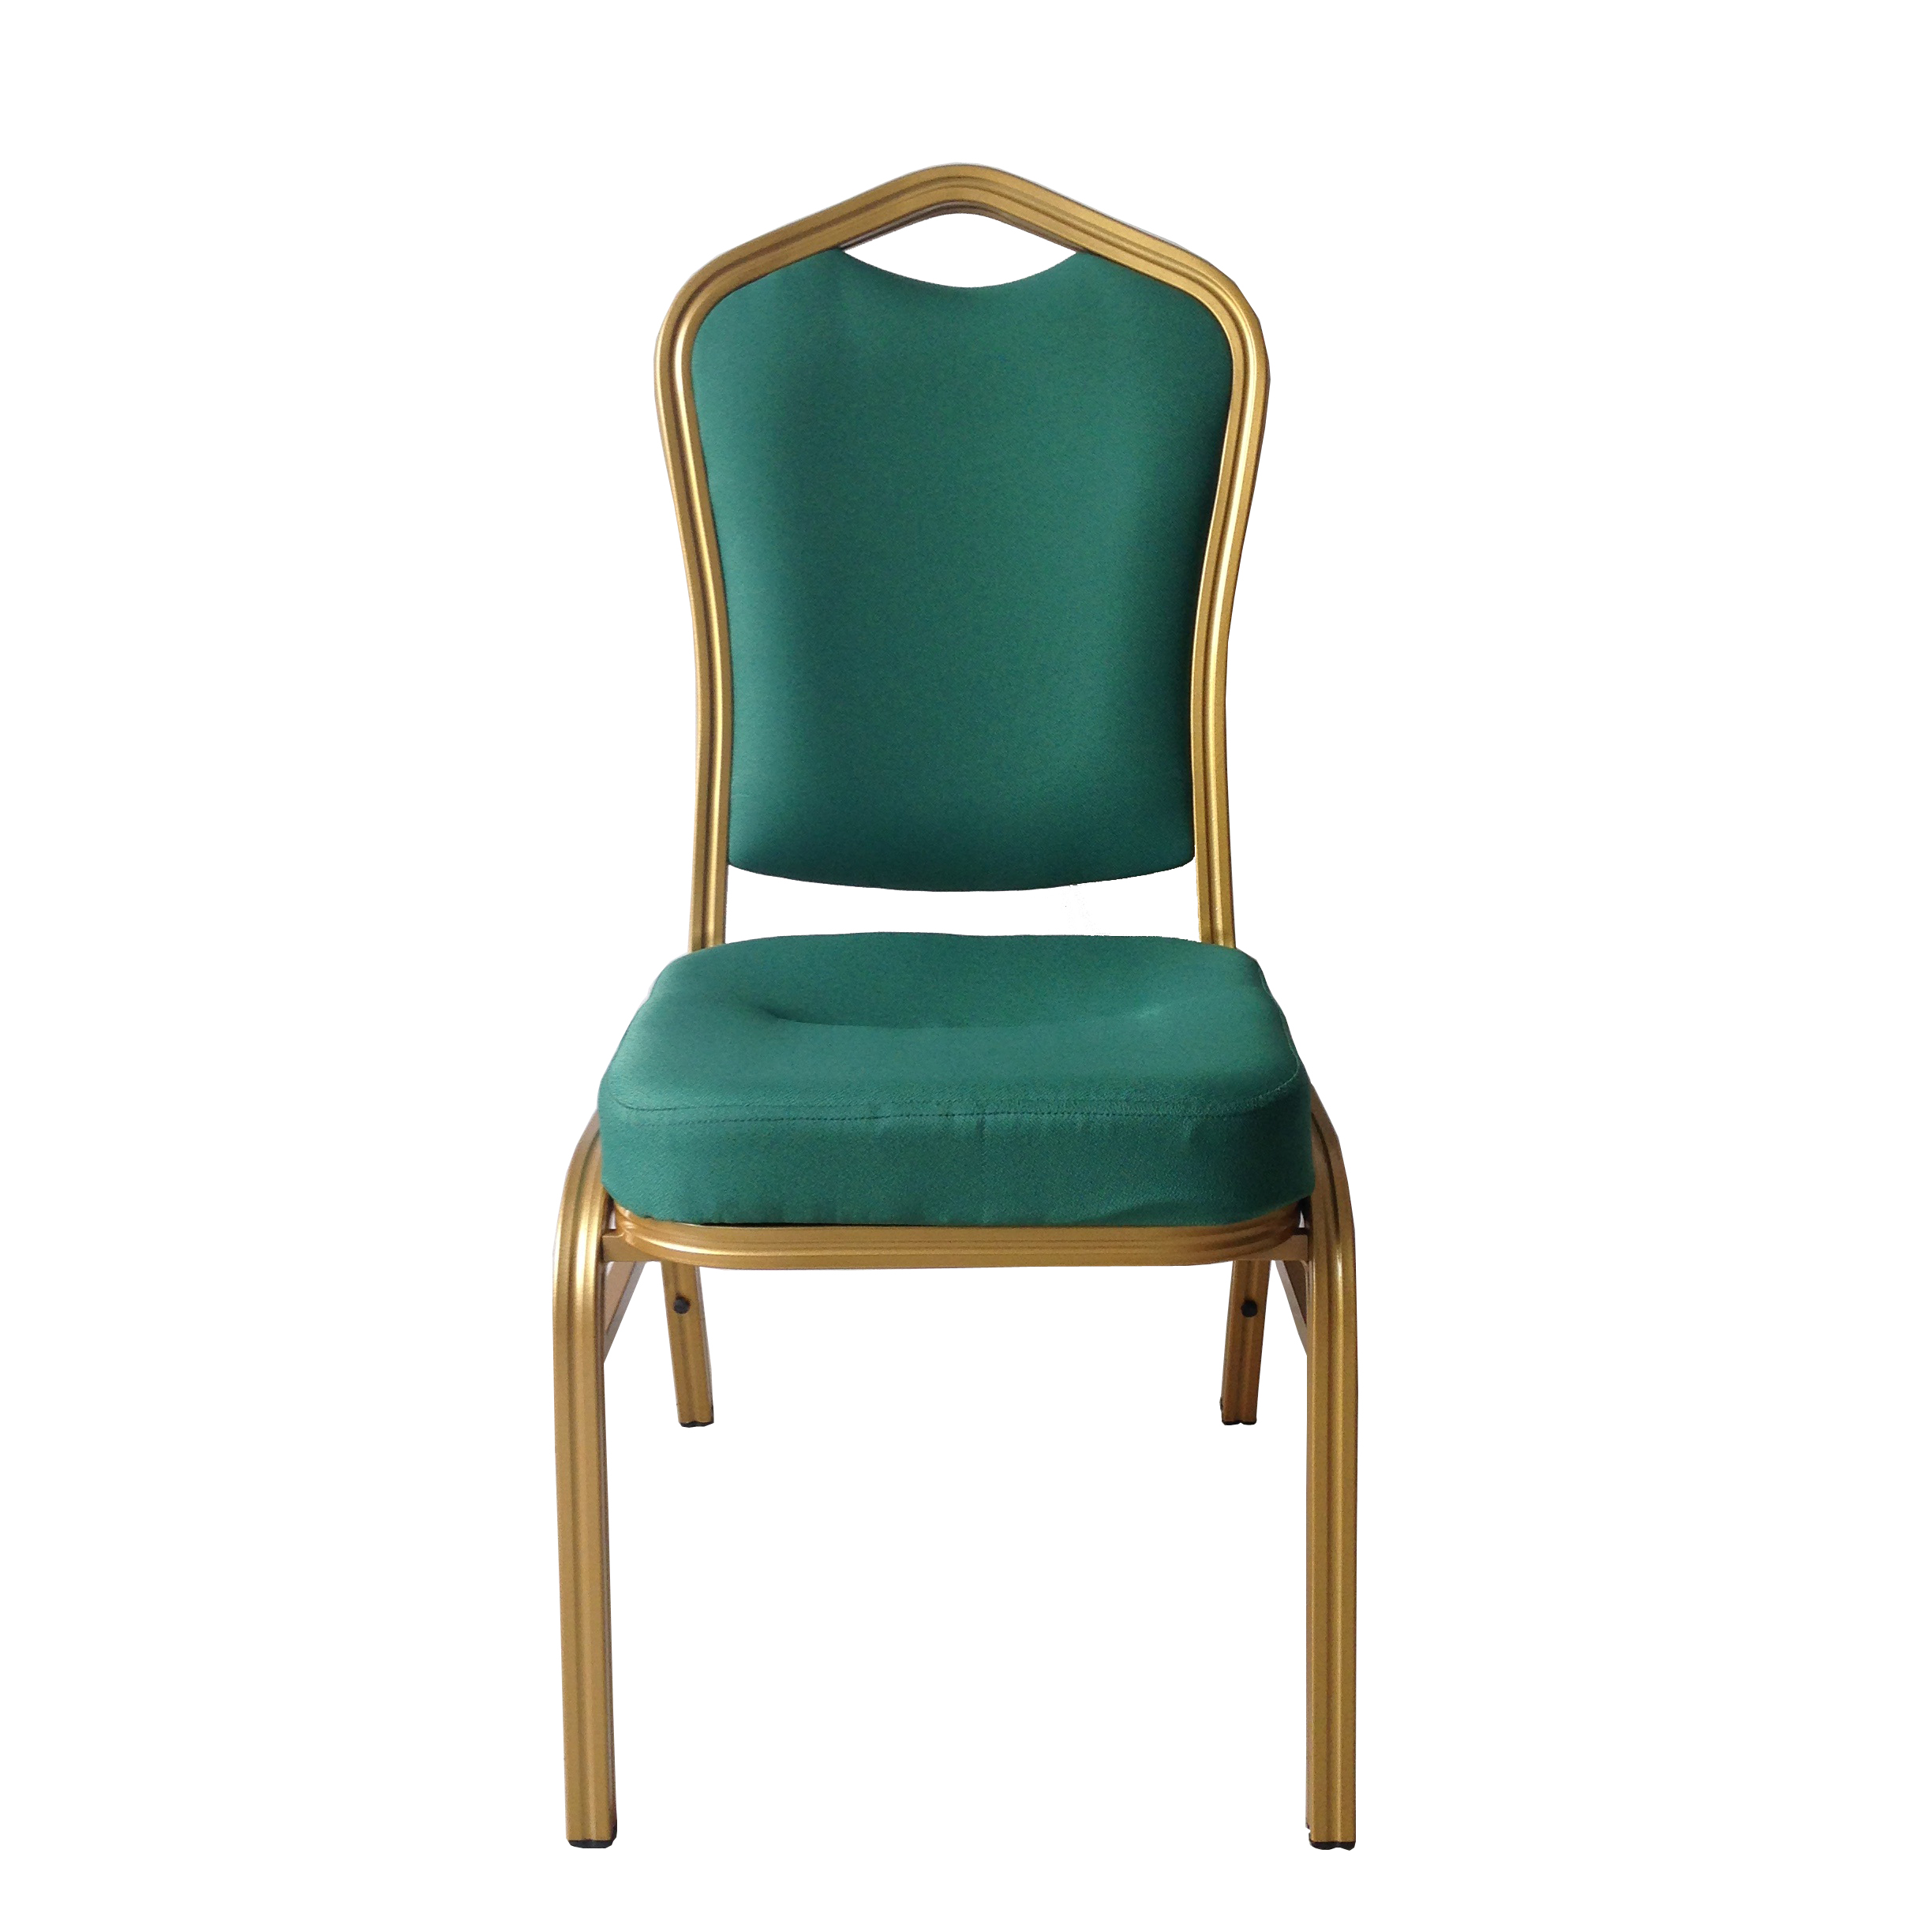 Factory Price For Prayer Kneeler Church Chair -